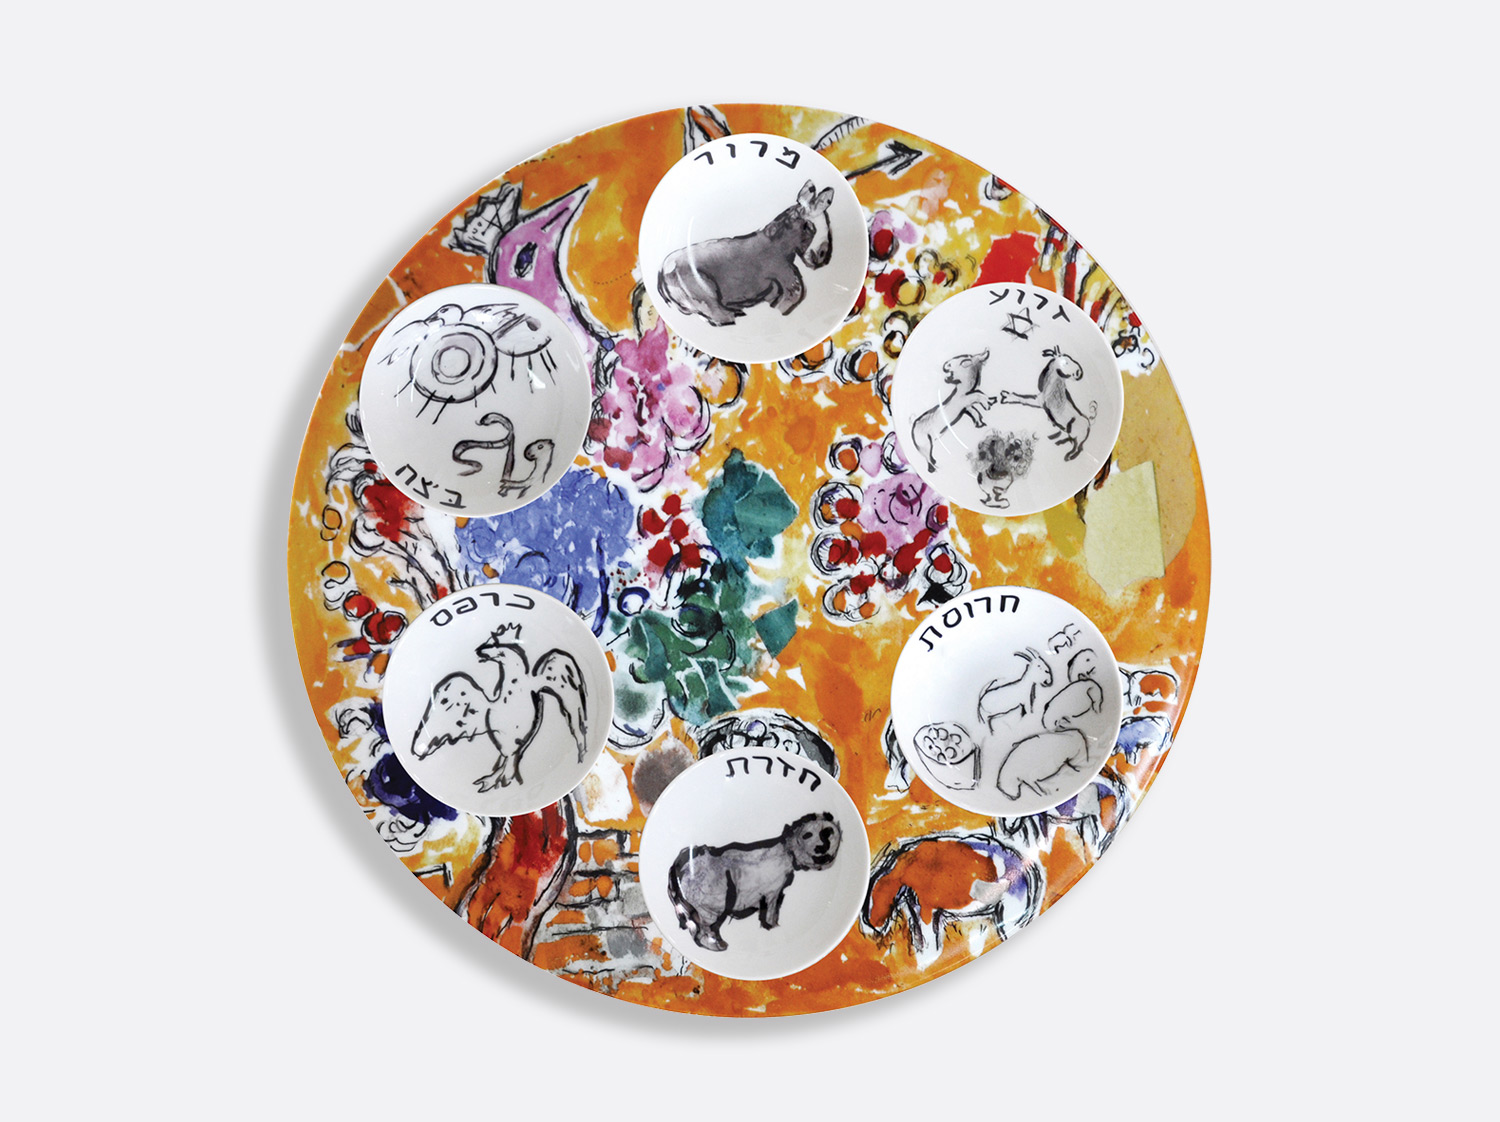 Ensemble à seder : Plat 38 cm & 6 coupelles en porcelaine de la collection Les vitraux d hadassah Bernardaud